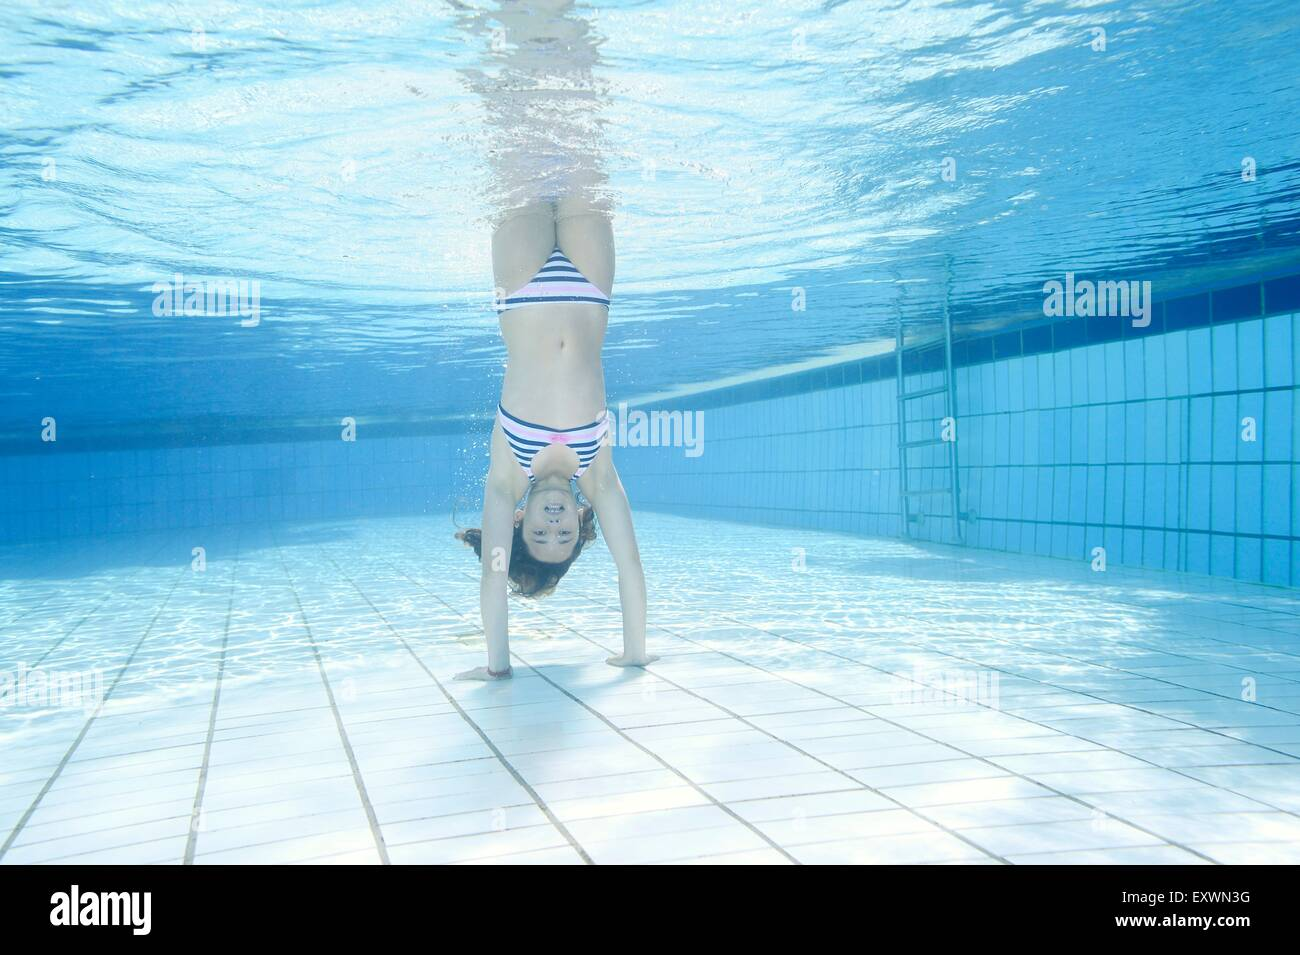 Stands In Pool Stock Photos & Stands In Pool Stock Images - Alamy